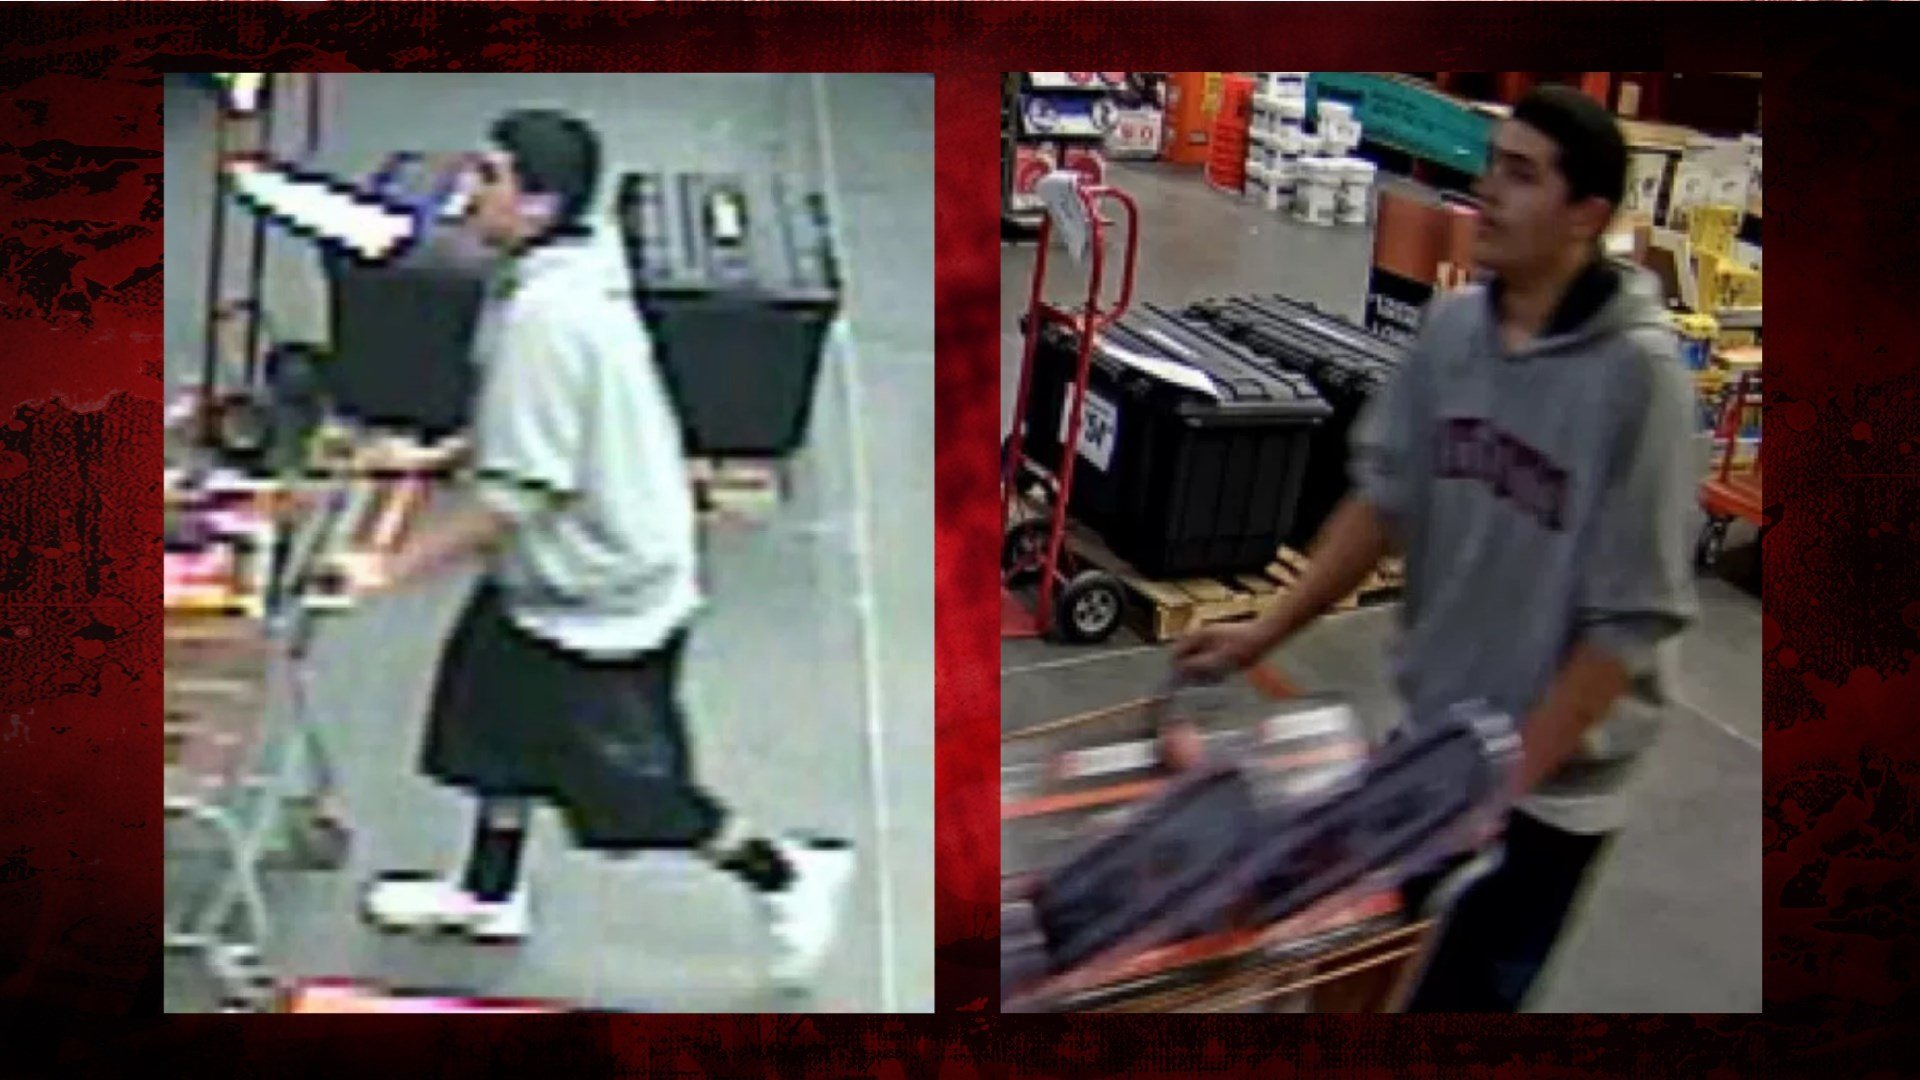 Man accused of stealing chainsaws weed eaters from Home Depot